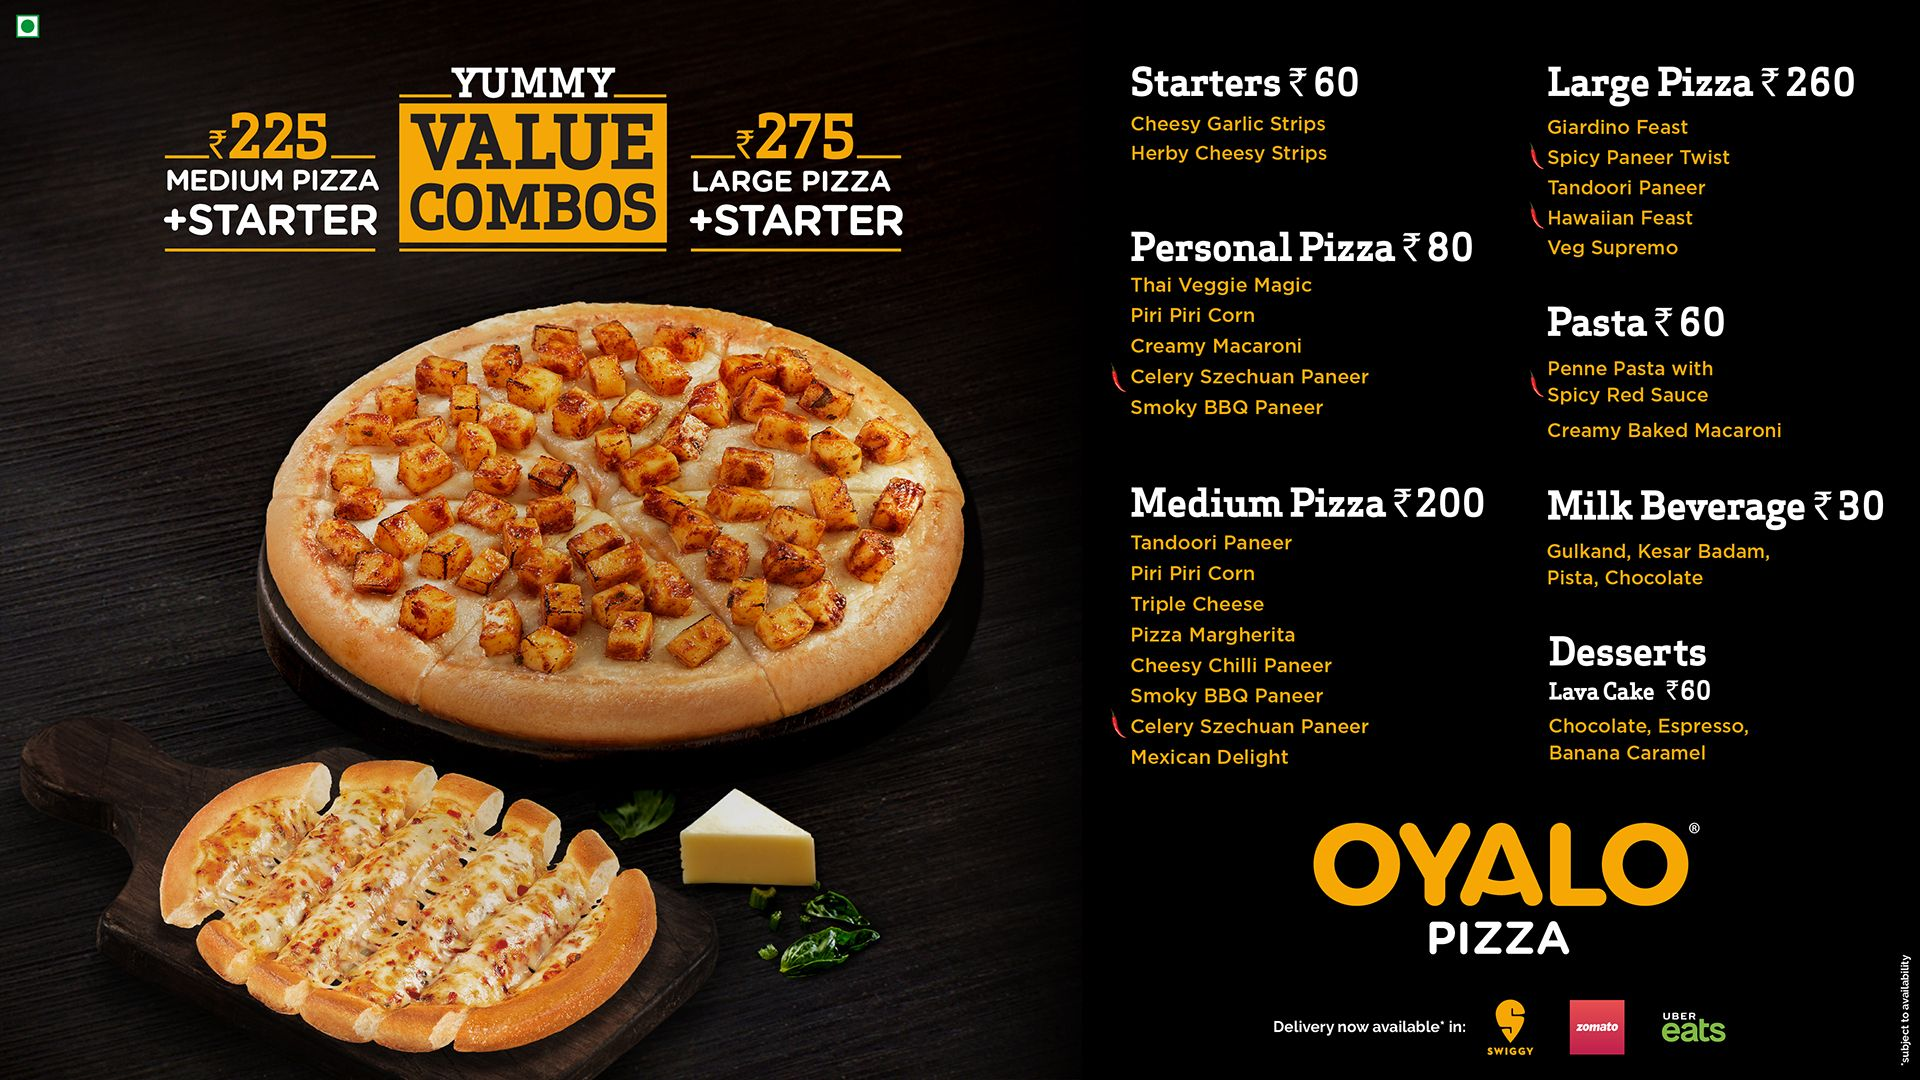 Oyalo Pizza Menu